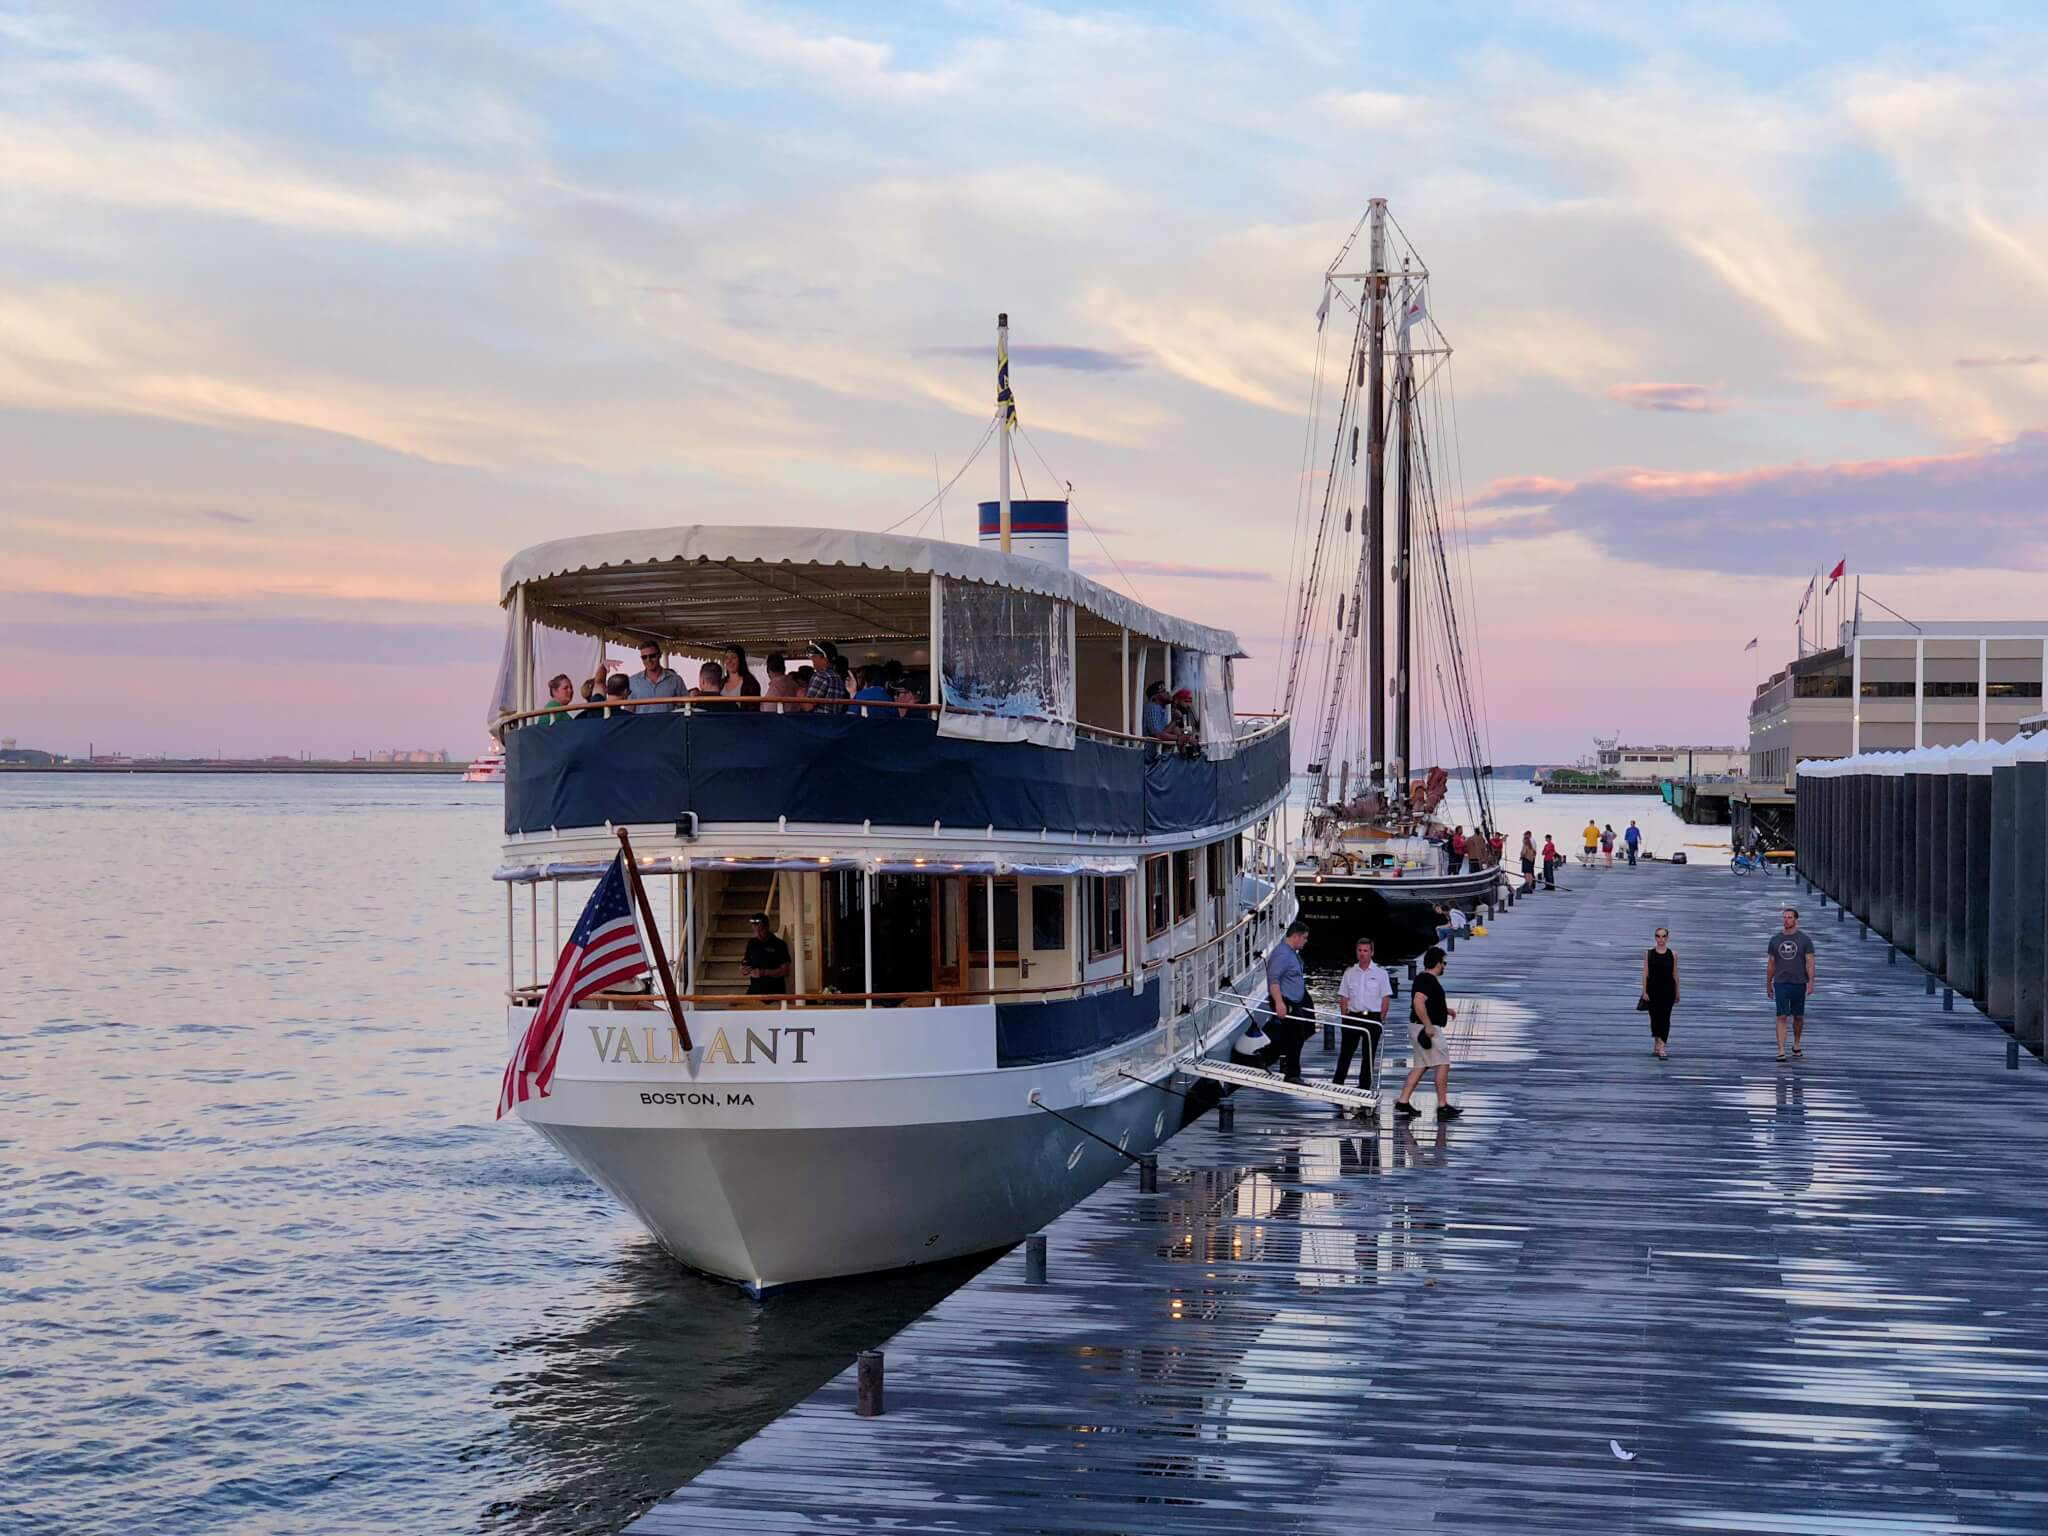 An event on the Valiant vessel from the Charles Riverboat company